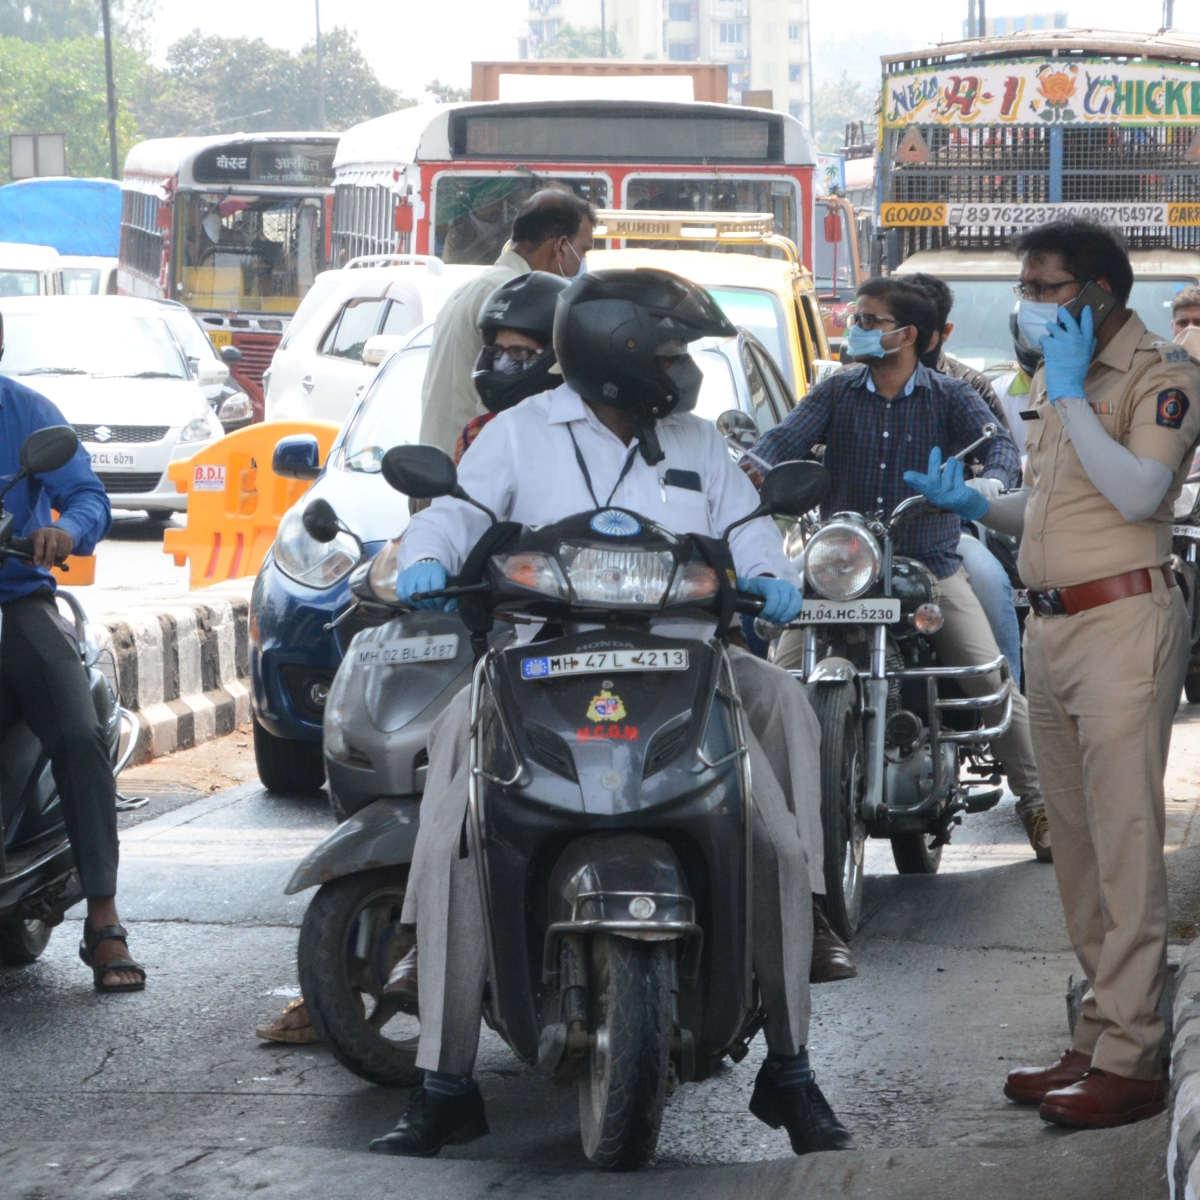 Coronavirus in Mumbai: Police seize 34 vehicles and penalise more than 4,000 people in MBMC for flouting lockdown norms